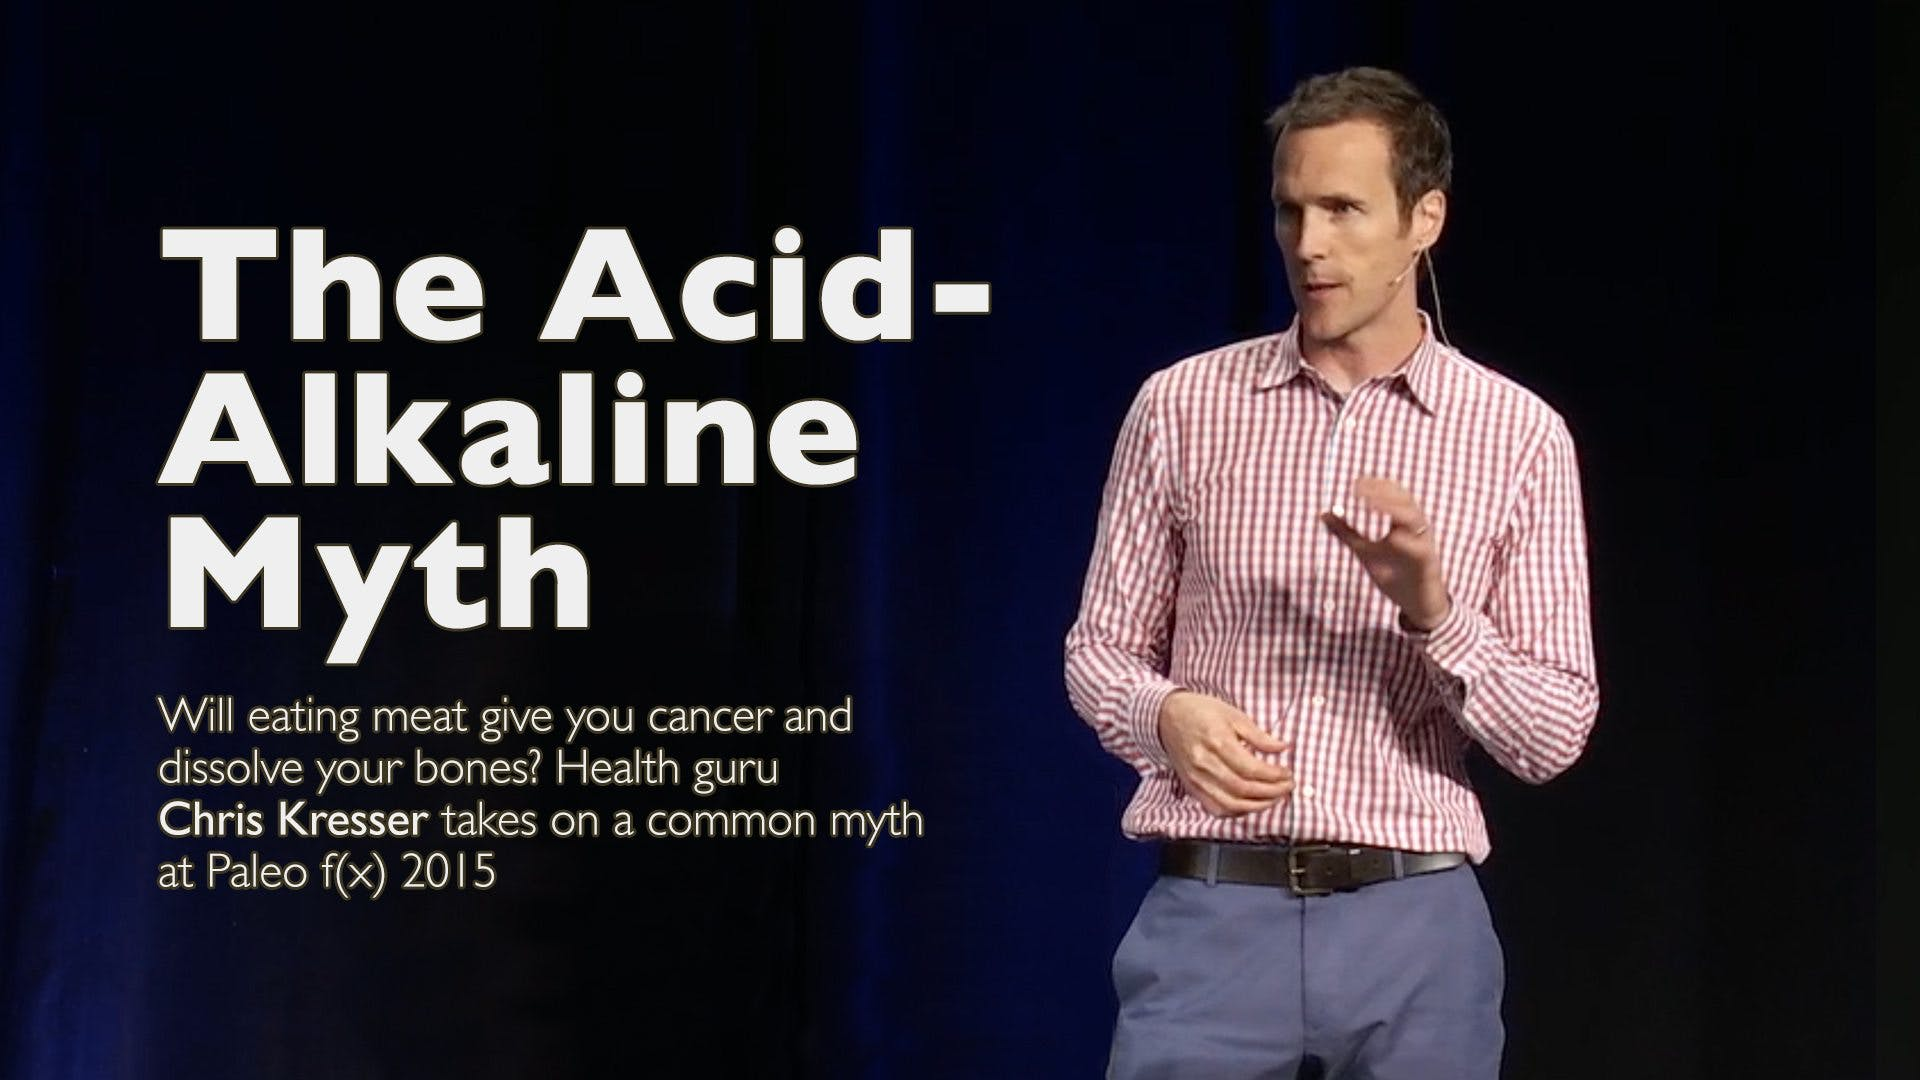 The Acid-Alkaline Myth – Chris Kresser